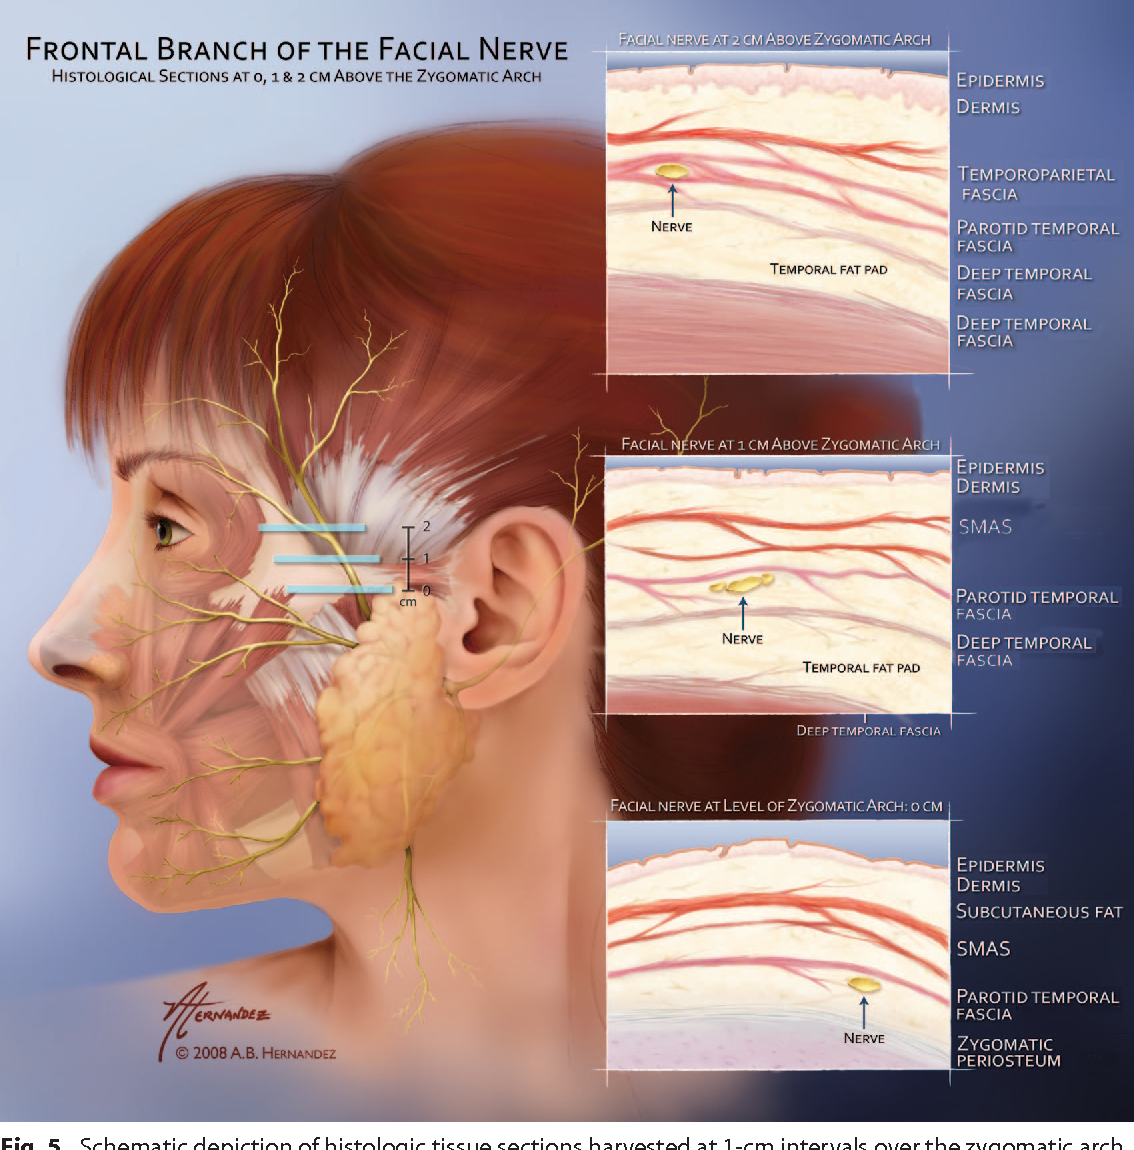 The Frontal Branch Of The Facial Nerve Across The Zygomatic Arch